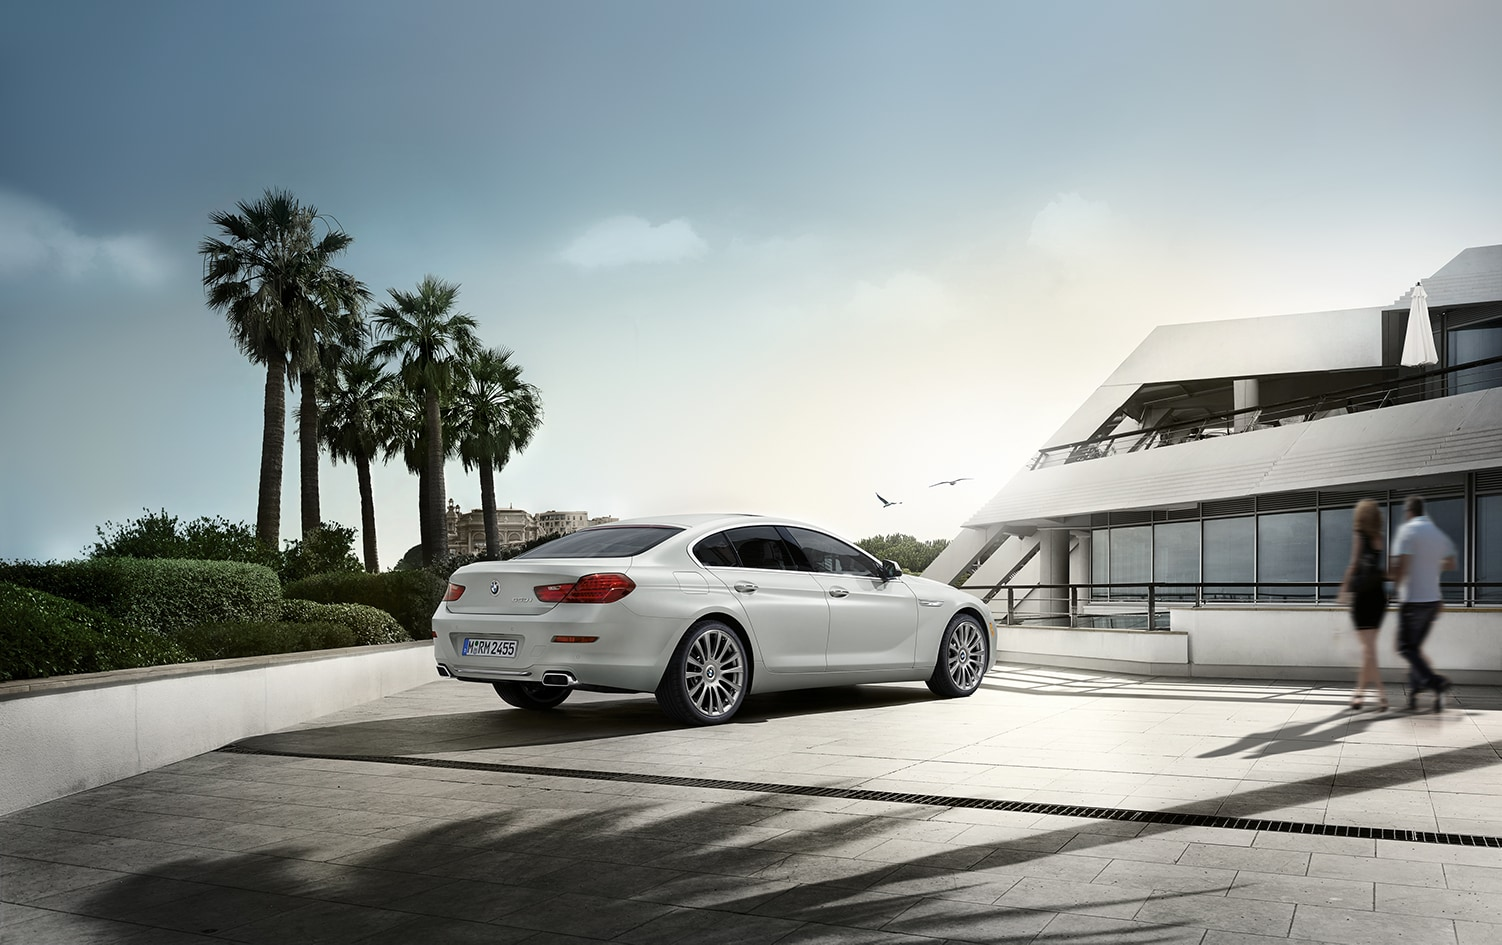 BMW of Rockville is a car dealership near Glen Echo MD | White 2018 BMW 6-Series parked by modern architecture and palm trees